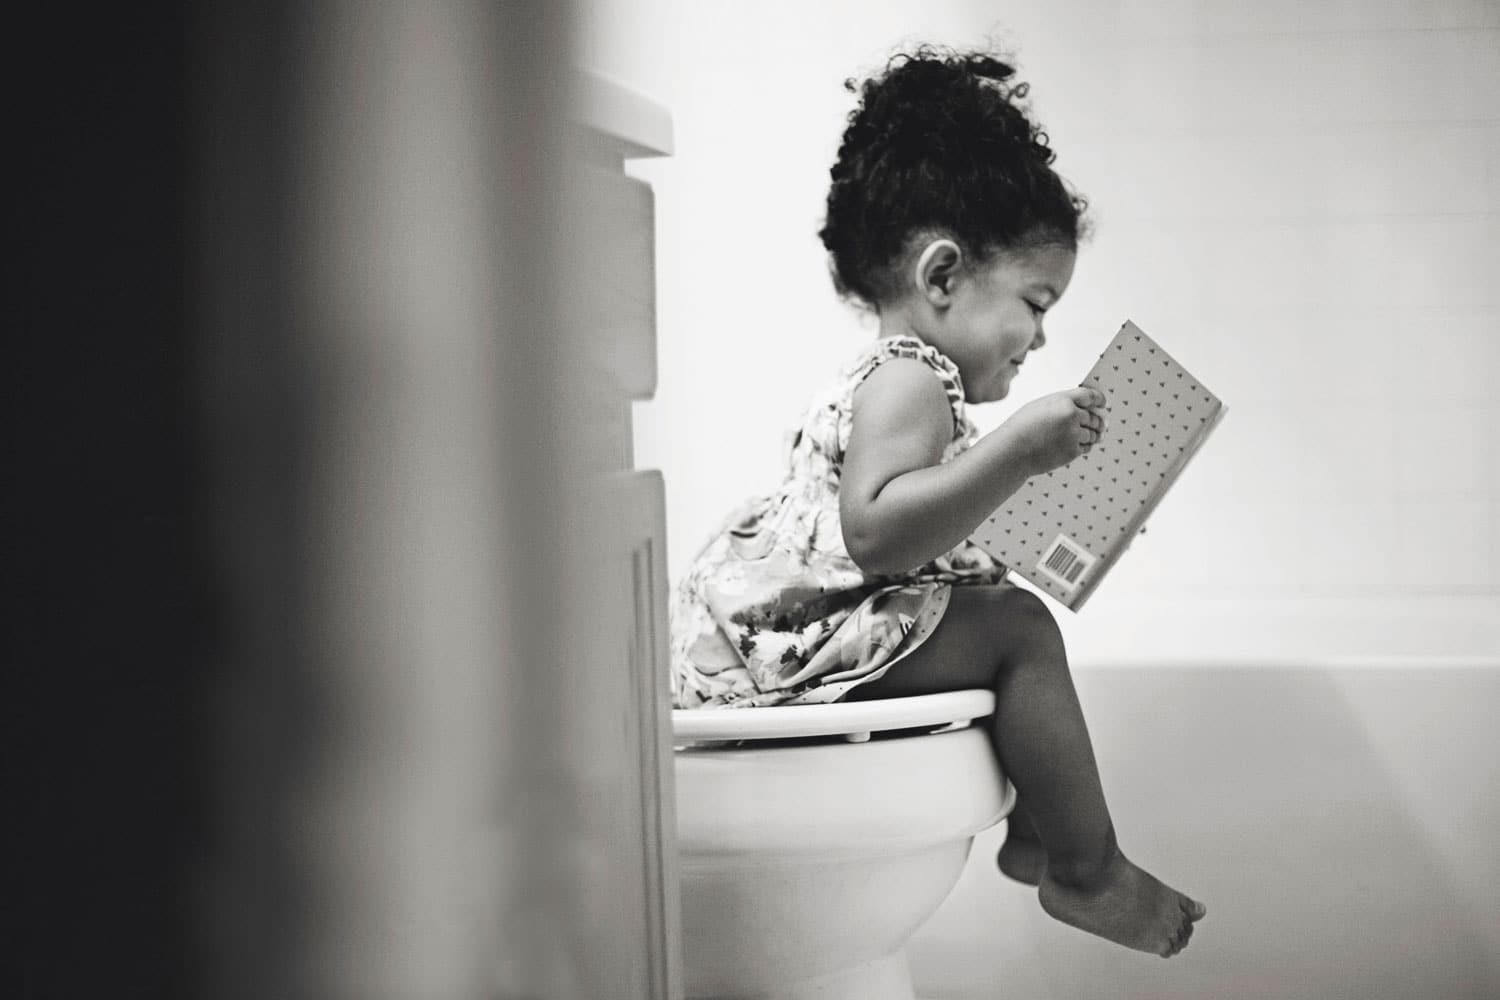 5 Tips for Overcoming Potty Training Challenges